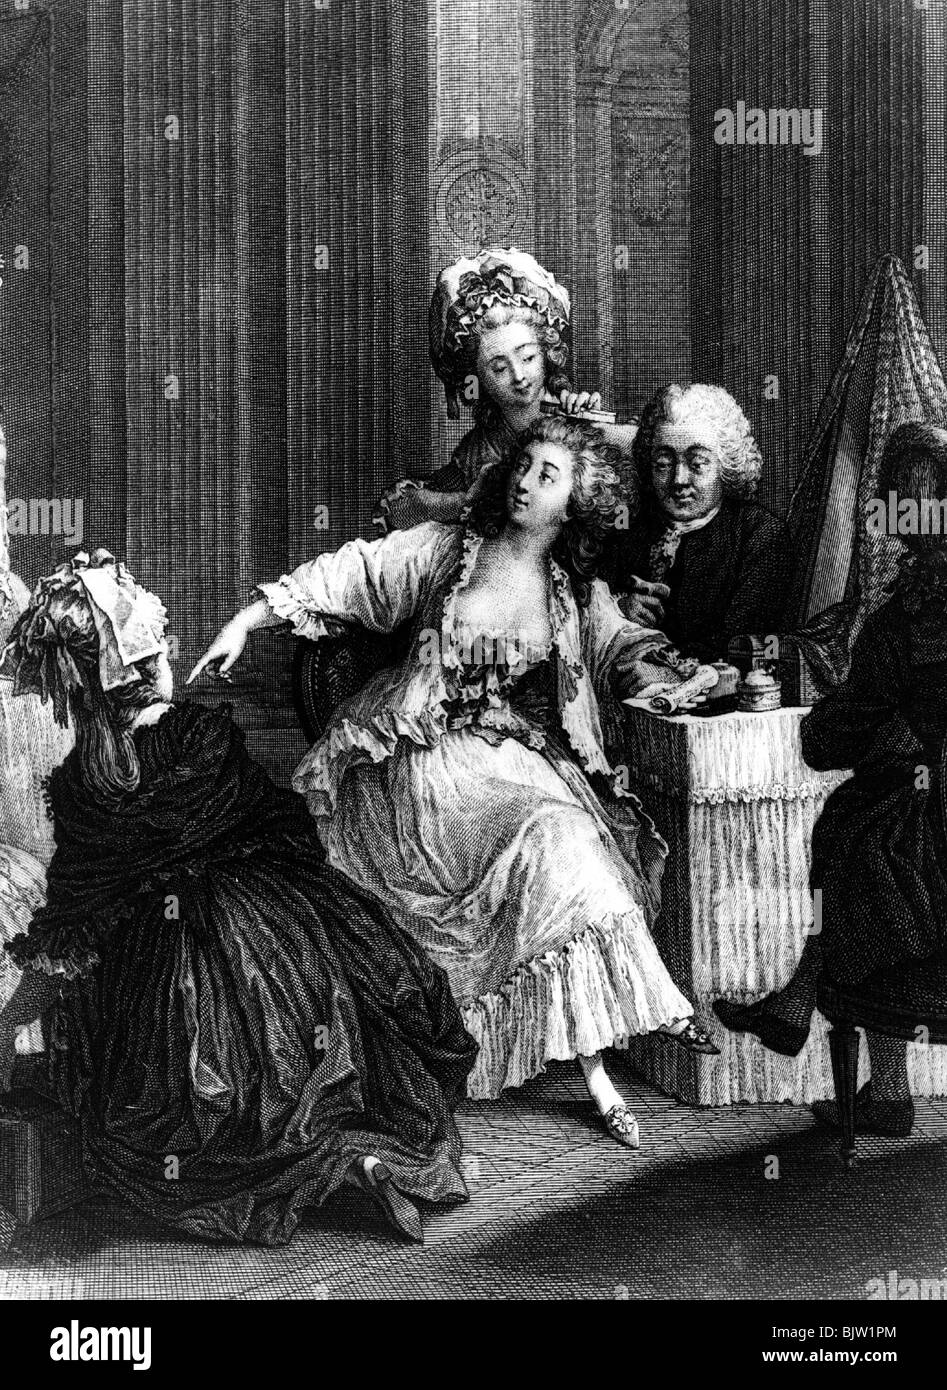 cosmetics, servants making hair of a lady of high society, copper engraving, 18th century, historic, historical, - Stock Image